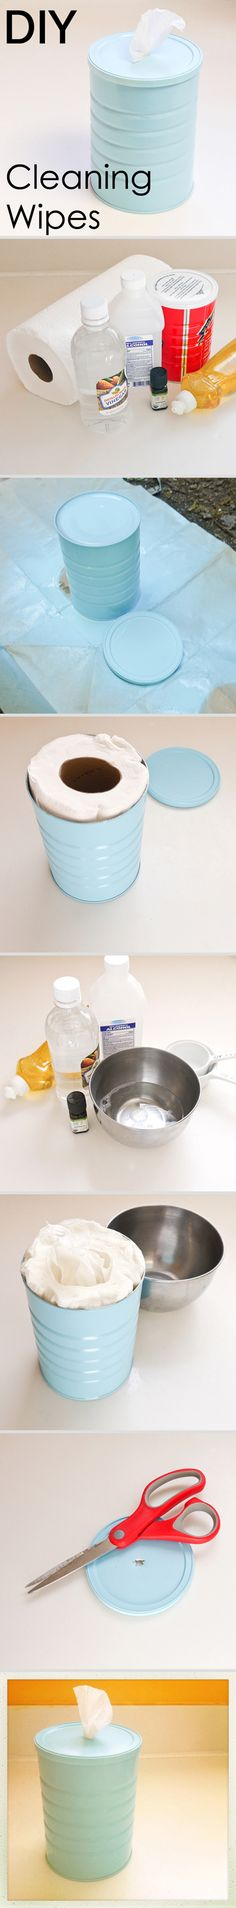 How to make your own cleaning wipes and canister. I use a lot of alcohol and vinegar to clean with already so I'm going to try this out! I will reuse my Clorox wipes canister.